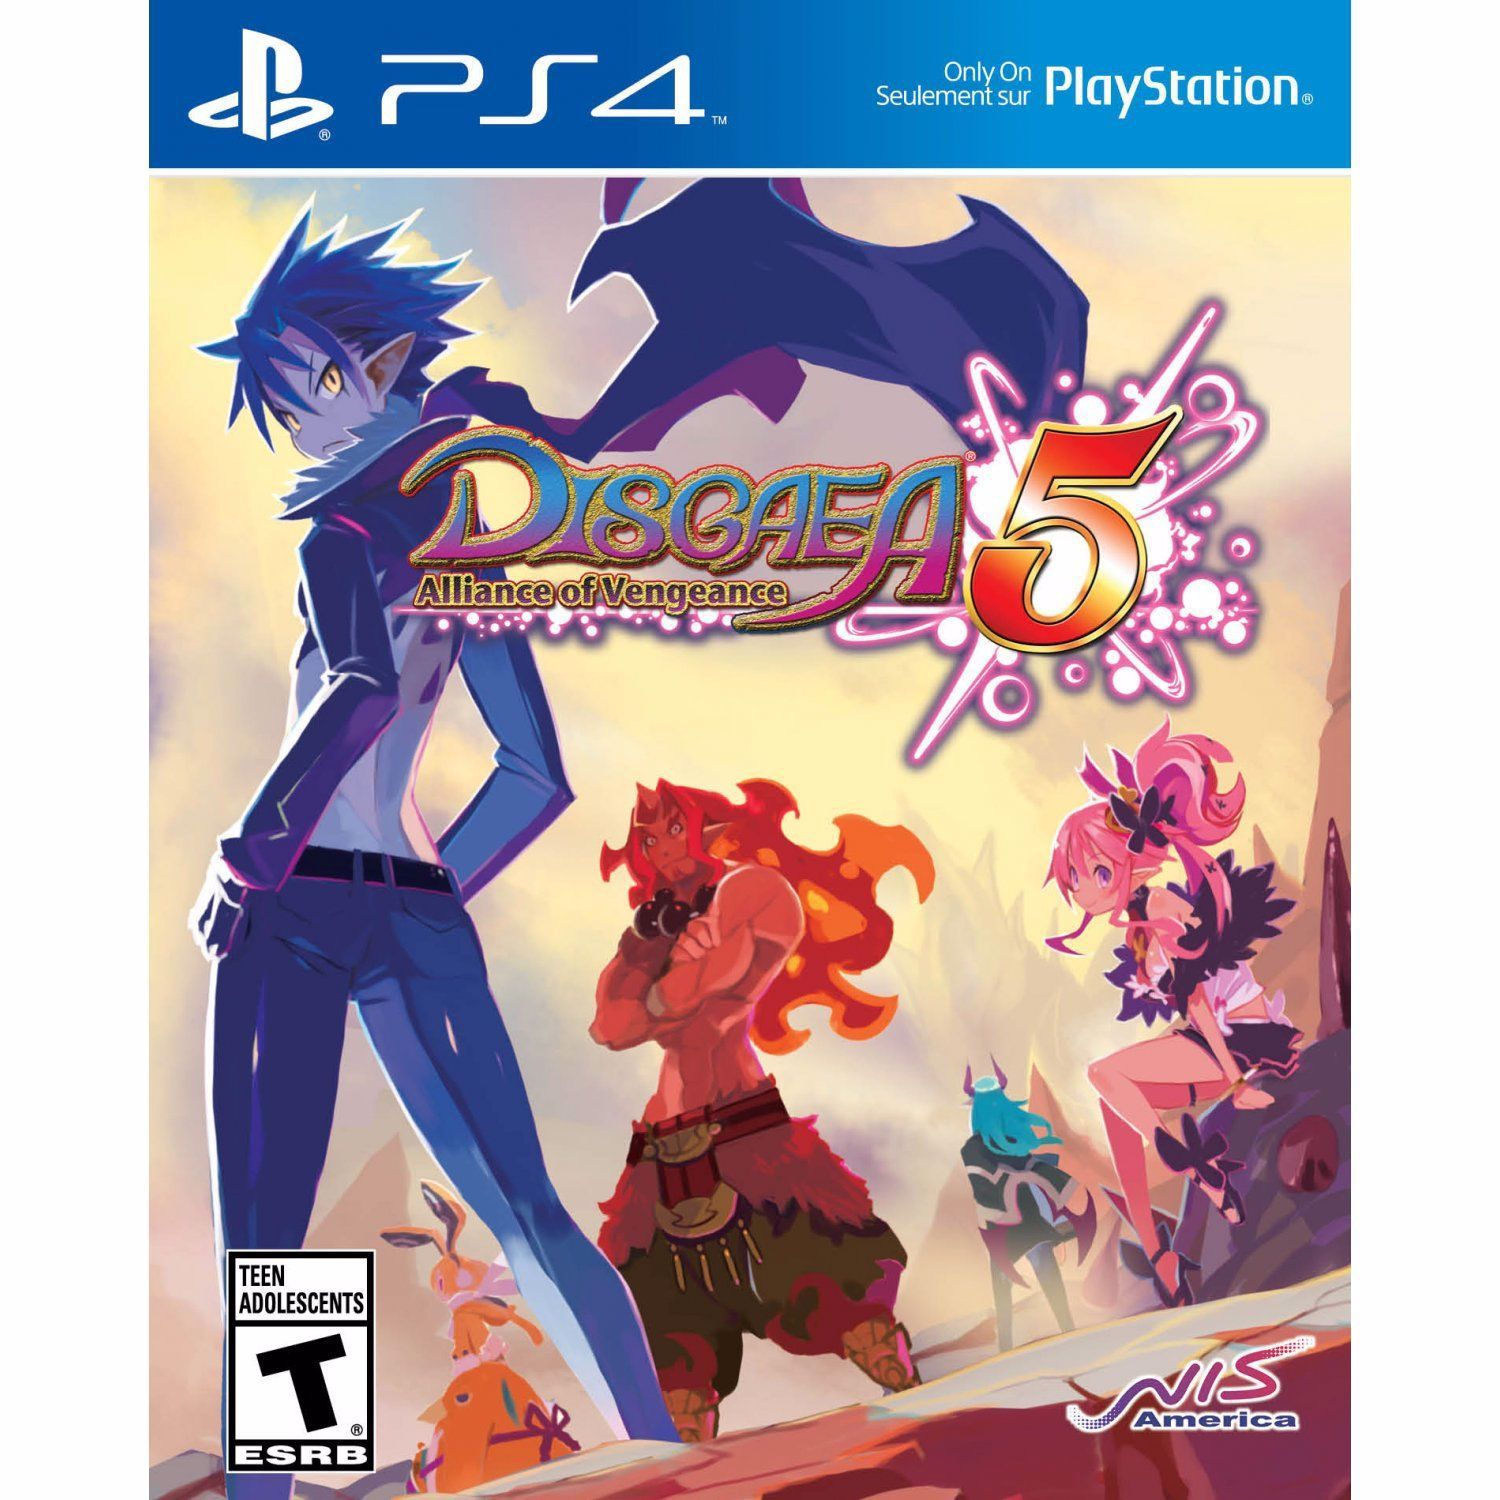 Pin By Clifton Block On Life In 2020 Disgaea Playstation Ps4 Digital Code